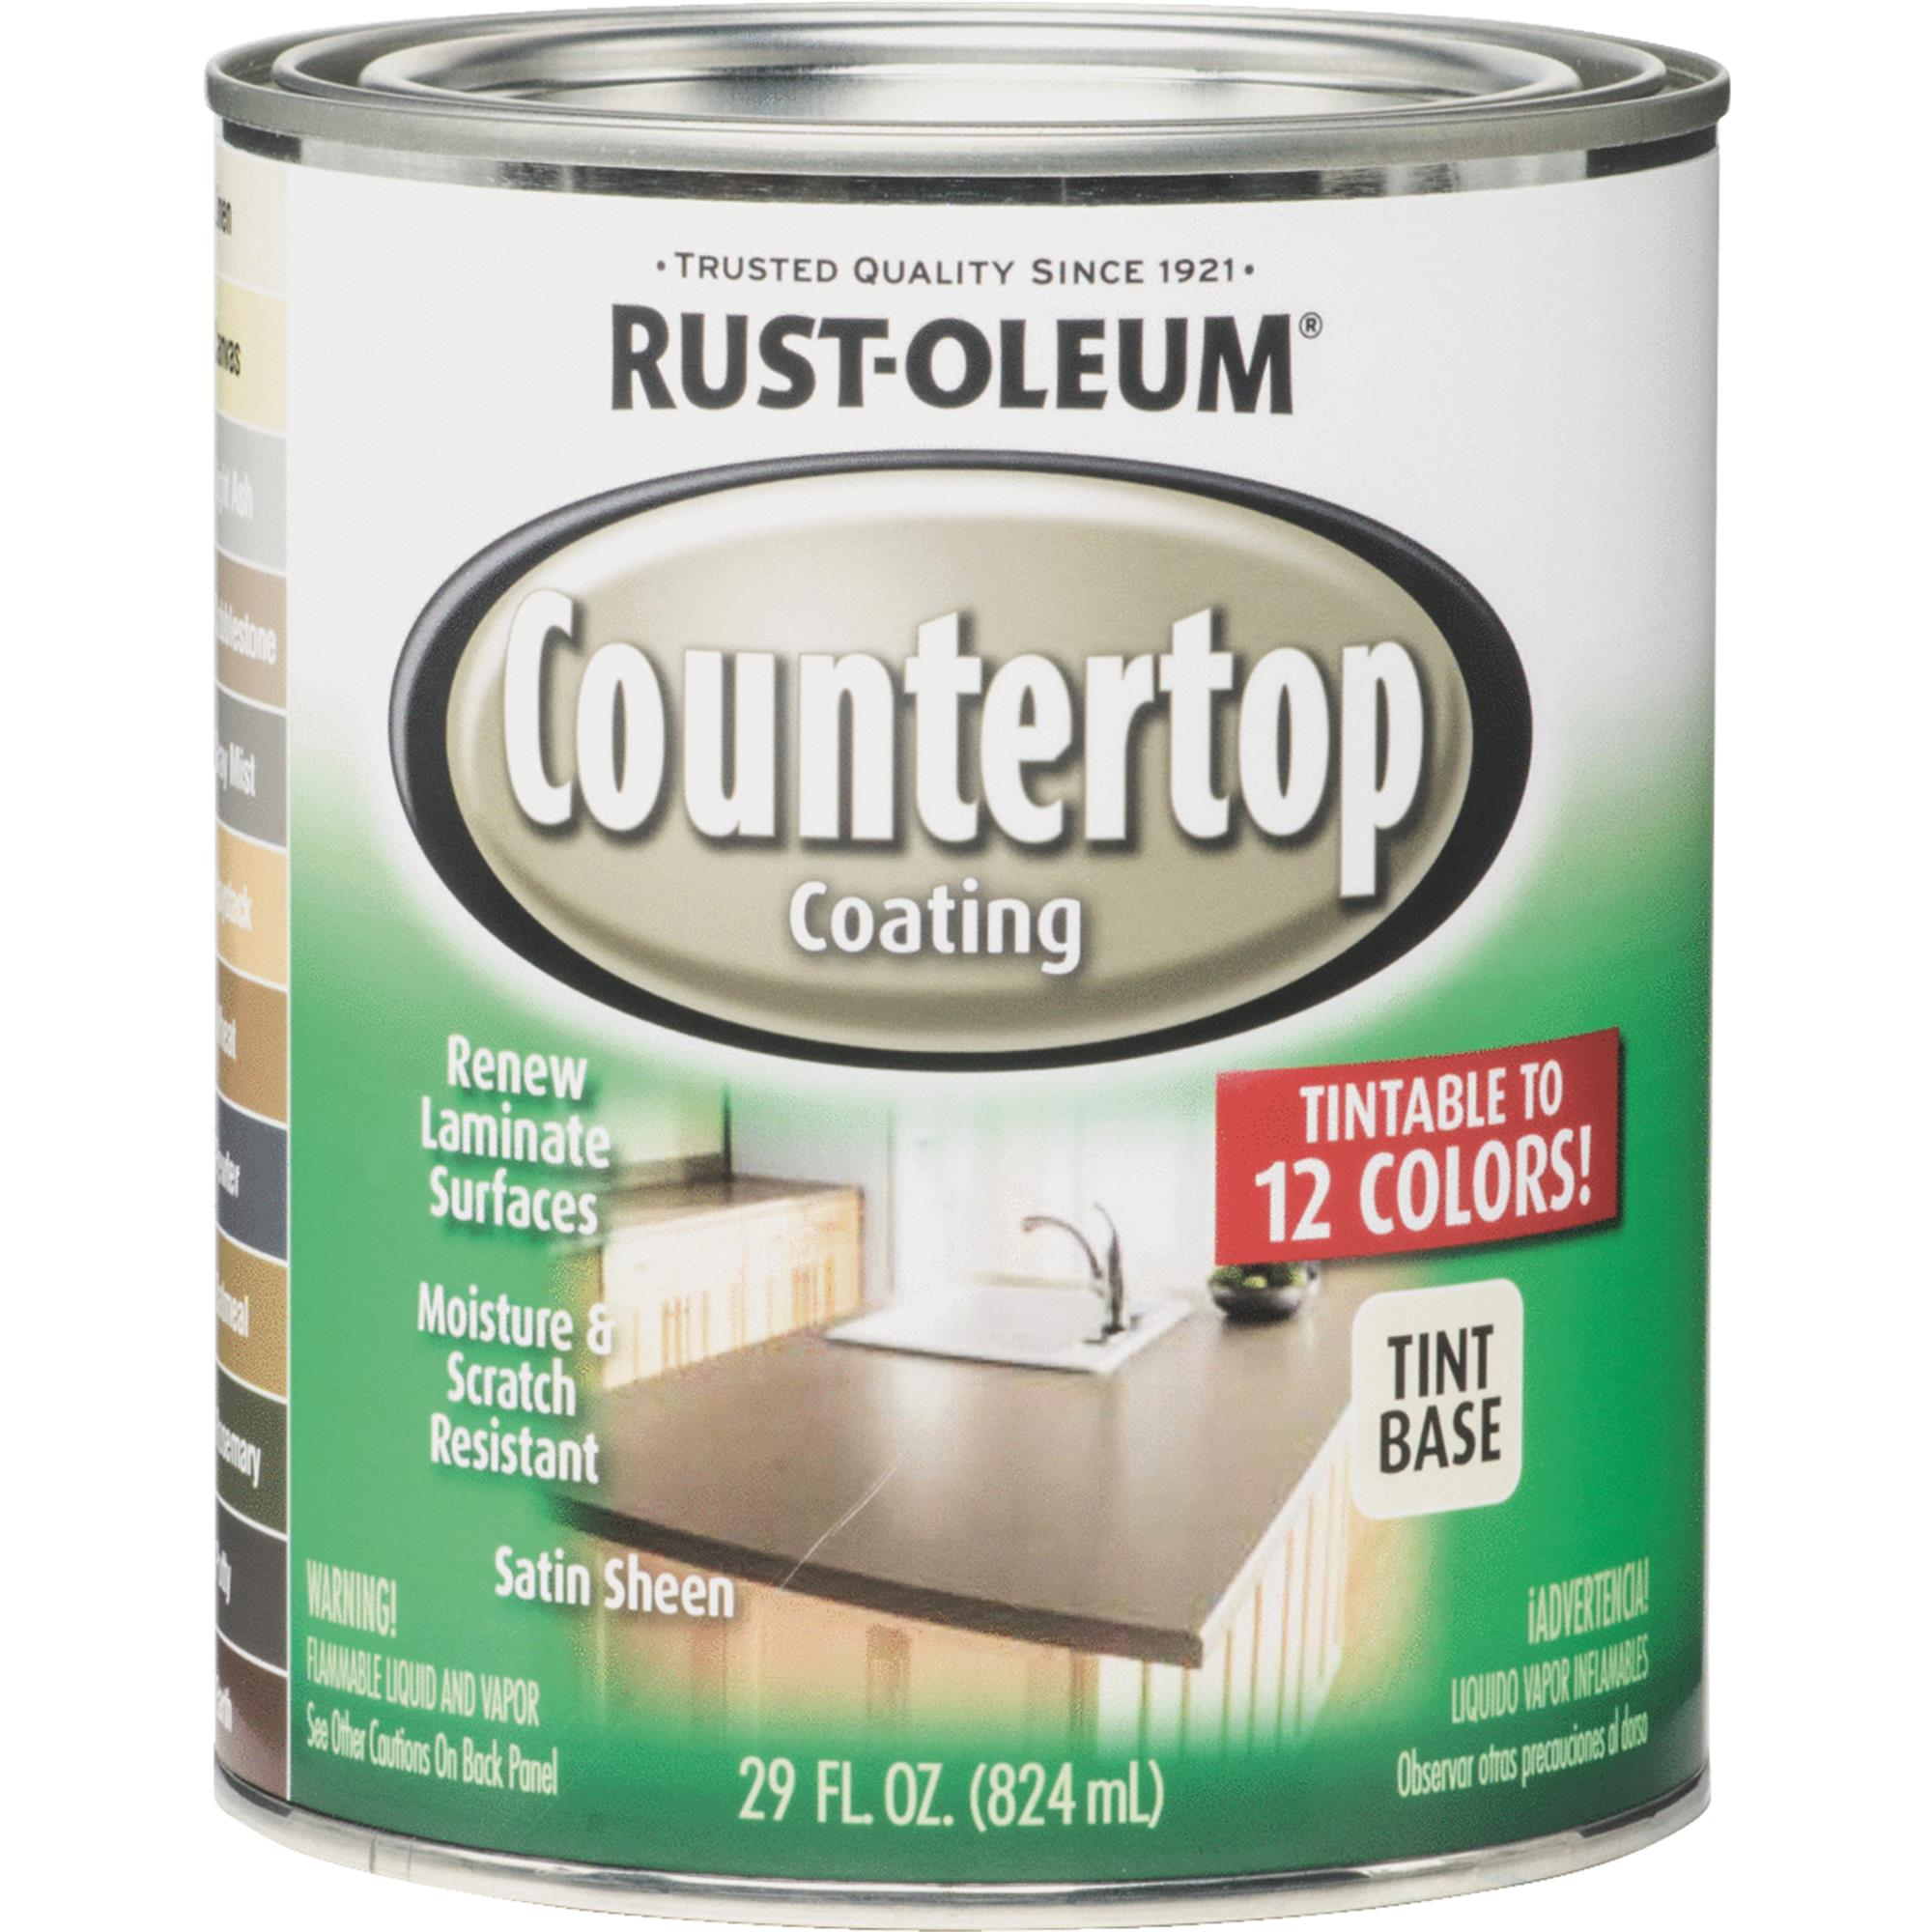 Rust-Oleum Countertop Coating Kit